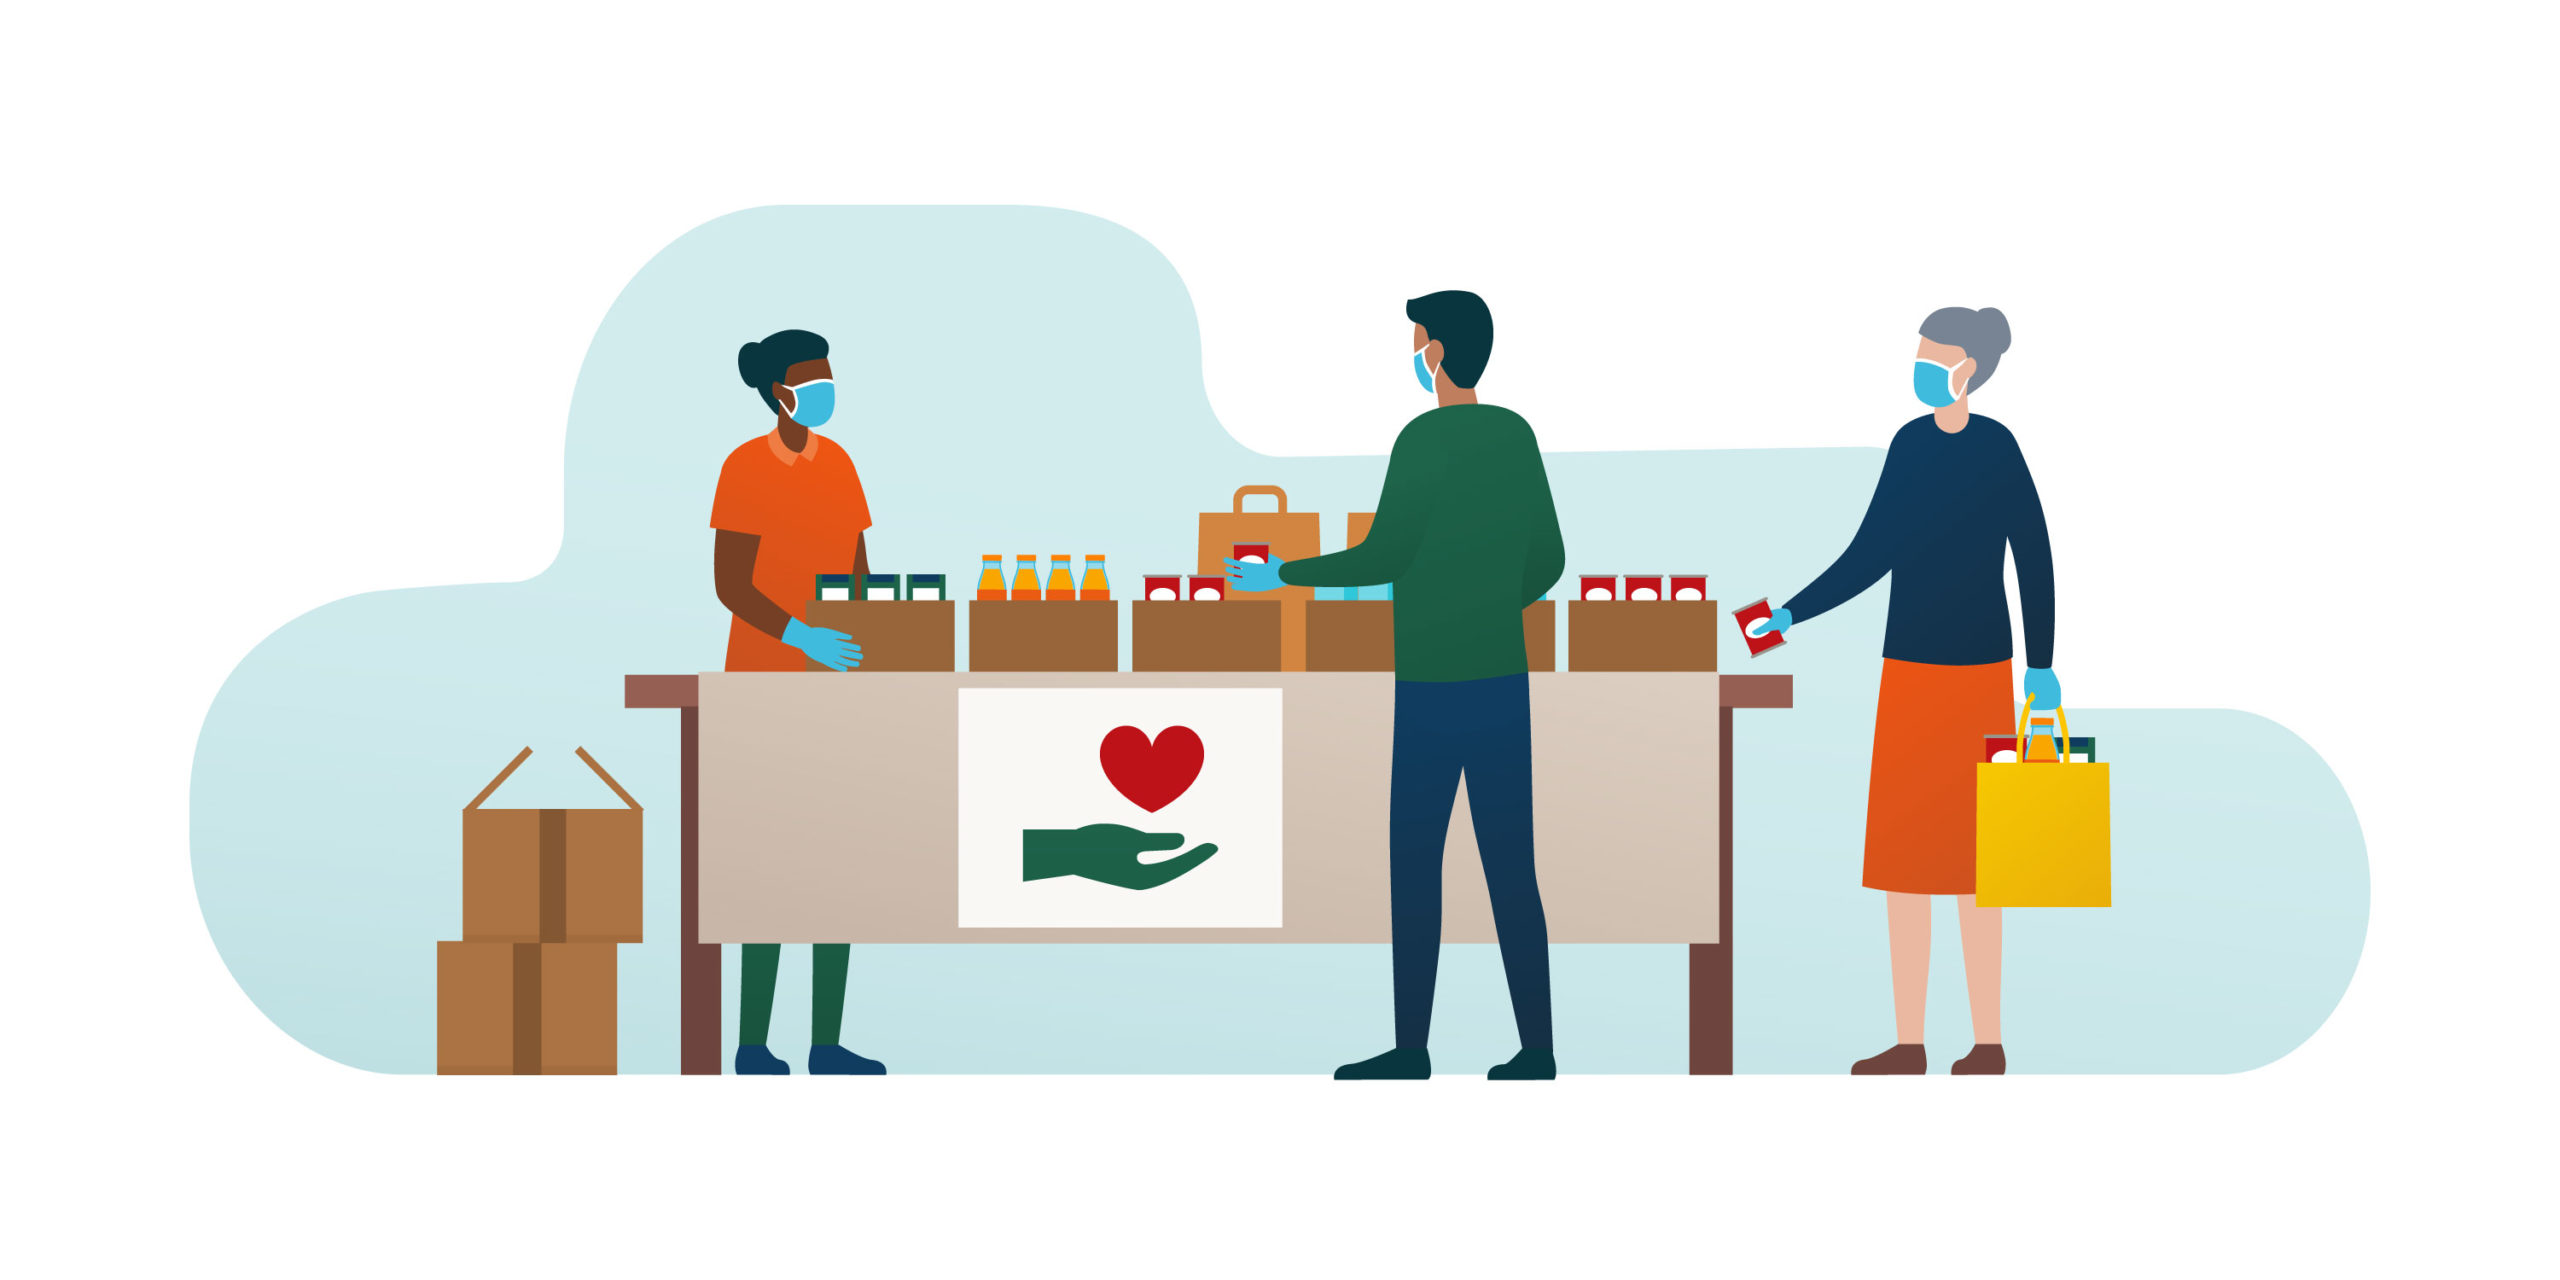 Illustration of a food bank with three people